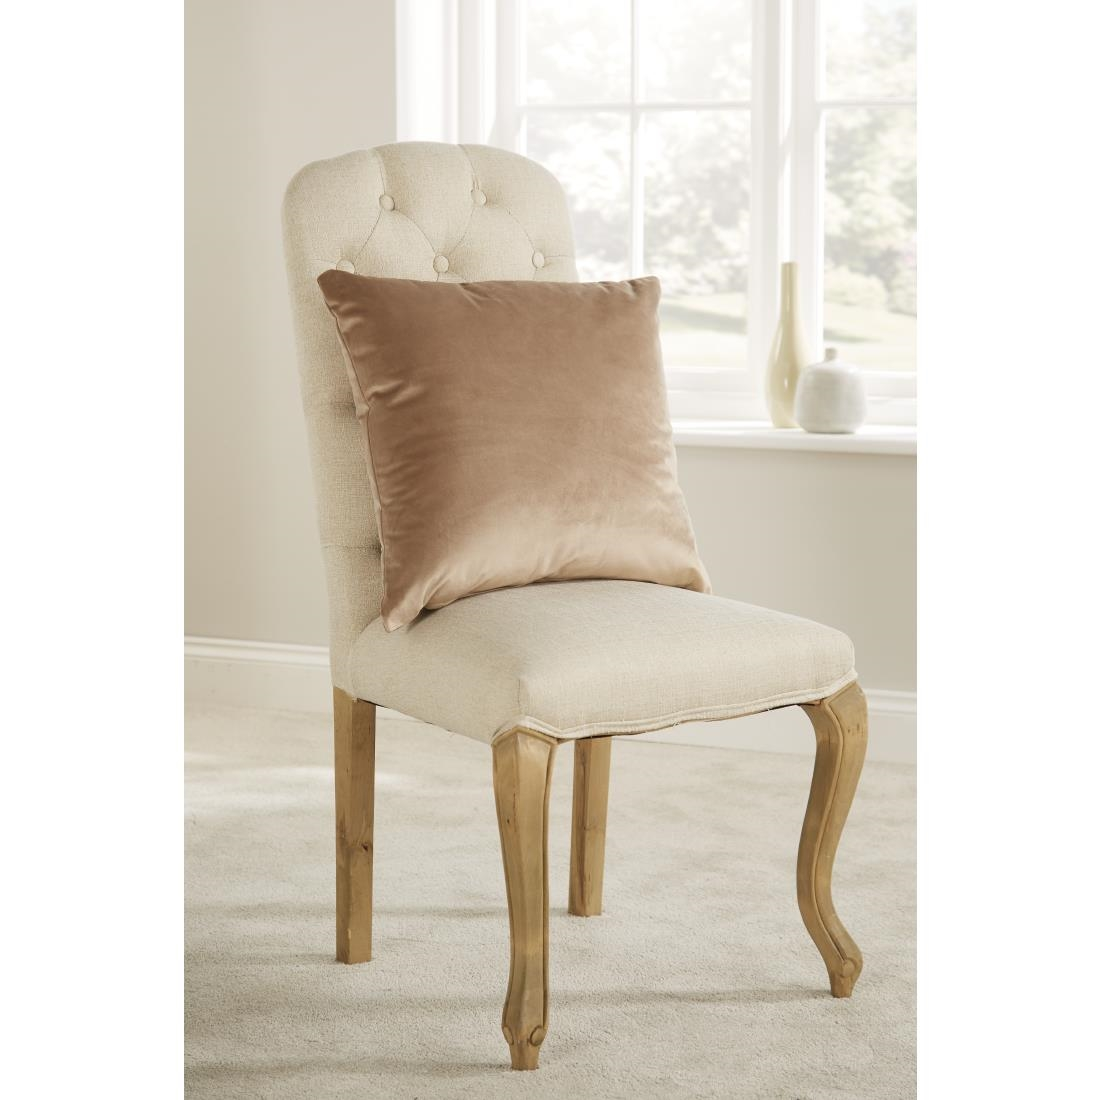 Image of Mitre Comfort DArcy Unpiped Cushion Biscuit